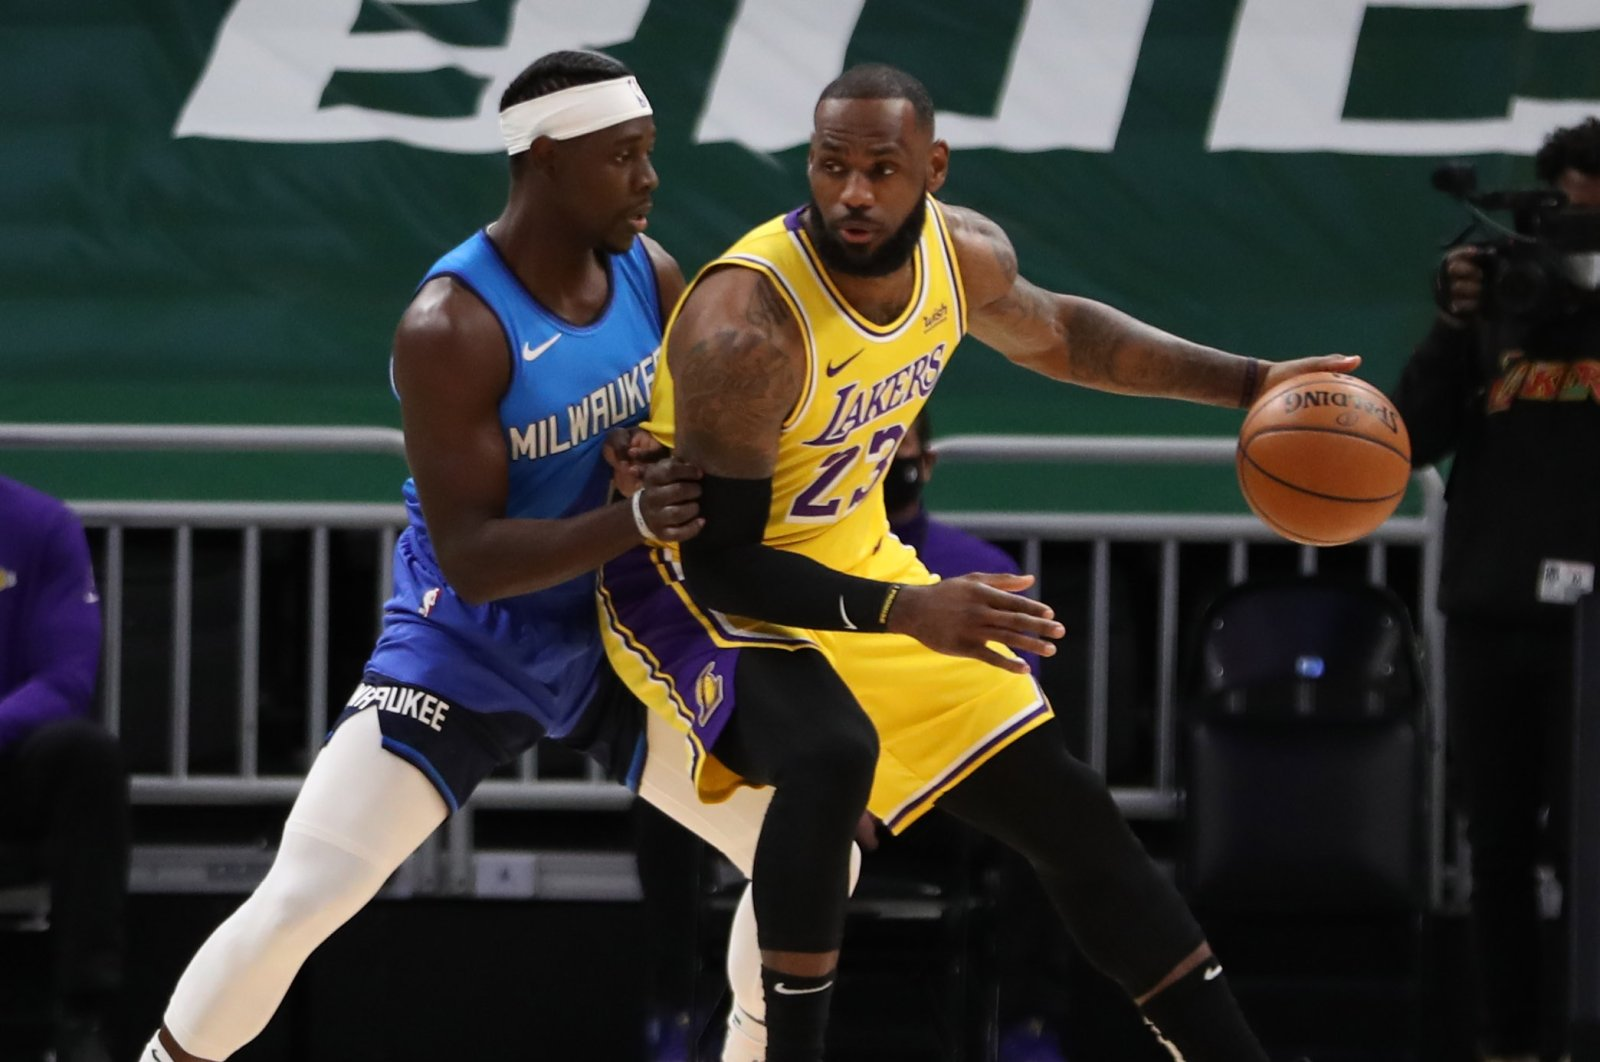 Los Angeles Lakers forward LeBron James (R) is defended by Milwaukee Bucks guard Jrue Holiday at the Bradley Center, Milwaukee, the U.S., Jan. 21, 2021. (Reuters Photo)